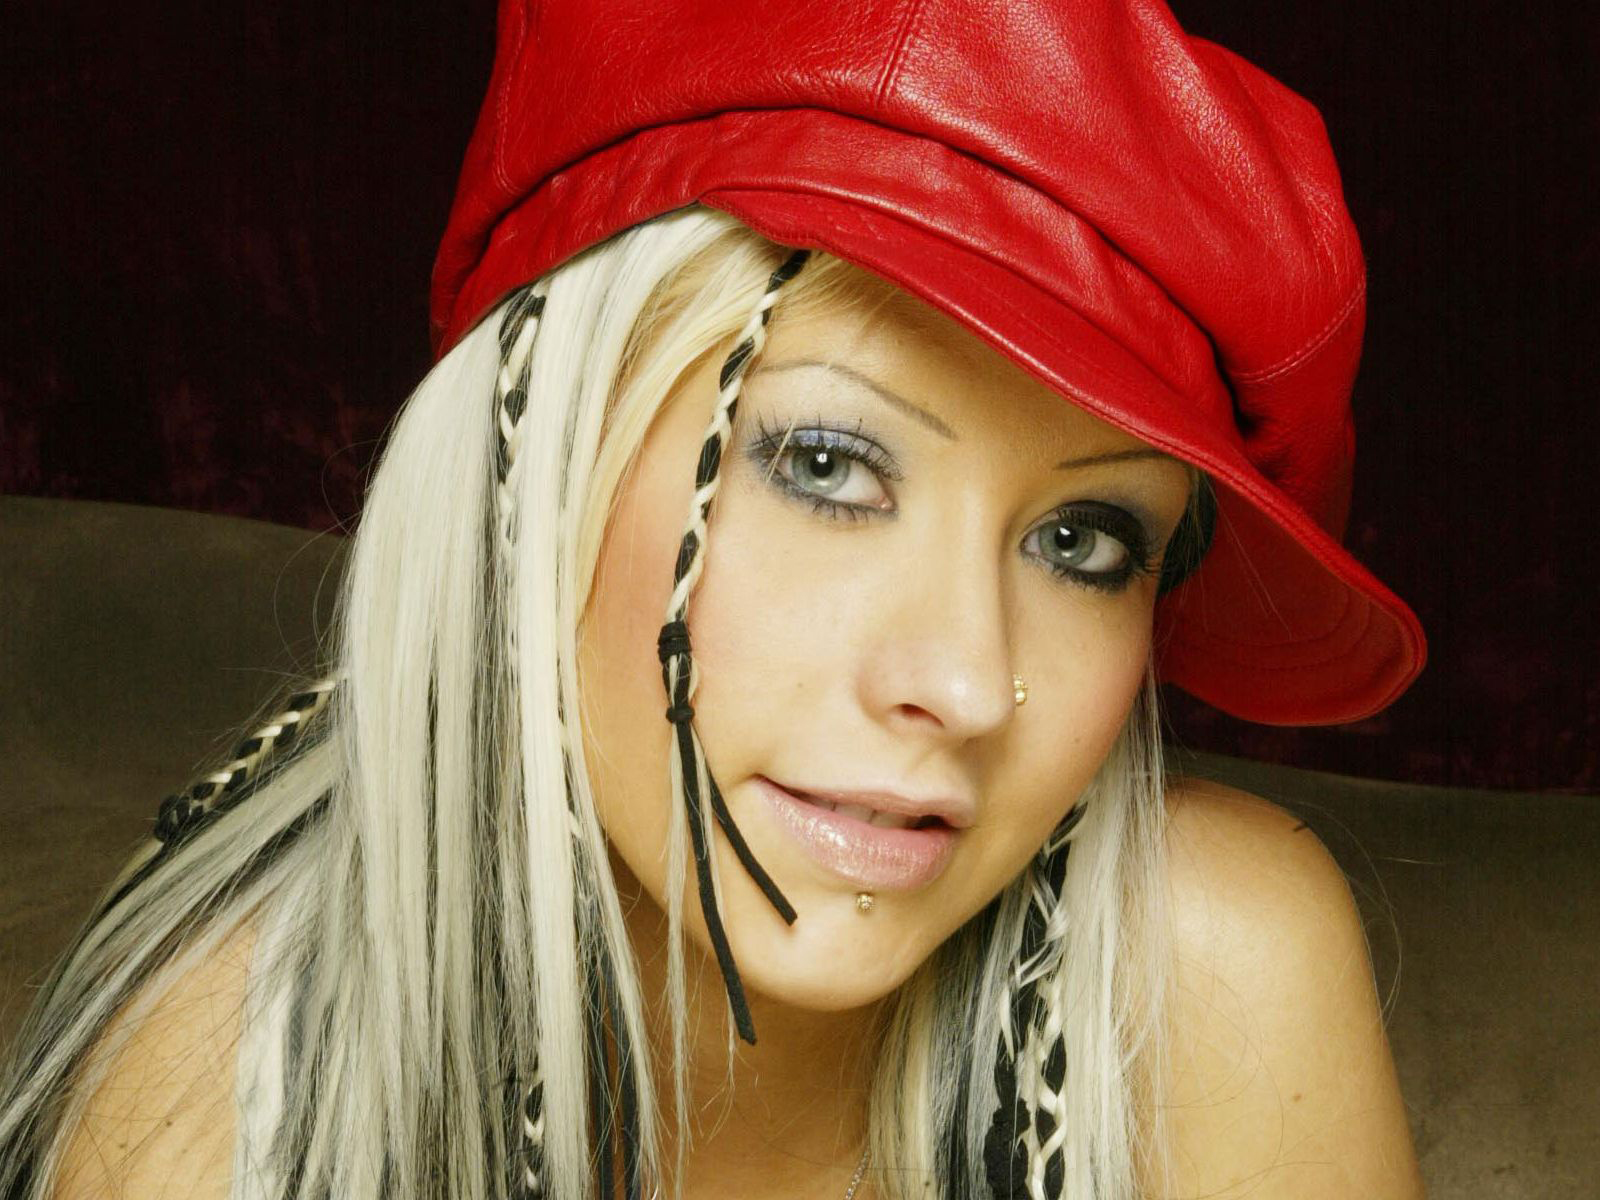 http://3.bp.blogspot.com/-CXS3K7VsN1o/TstYtD6O0XI/AAAAAAAAQ9o/btgQudW_ZZQ/s1600/The-best-top-desktop-christina-aguilera-wallpapers-2-christina-aquilera-with-red-hat-wallpaper.jpg